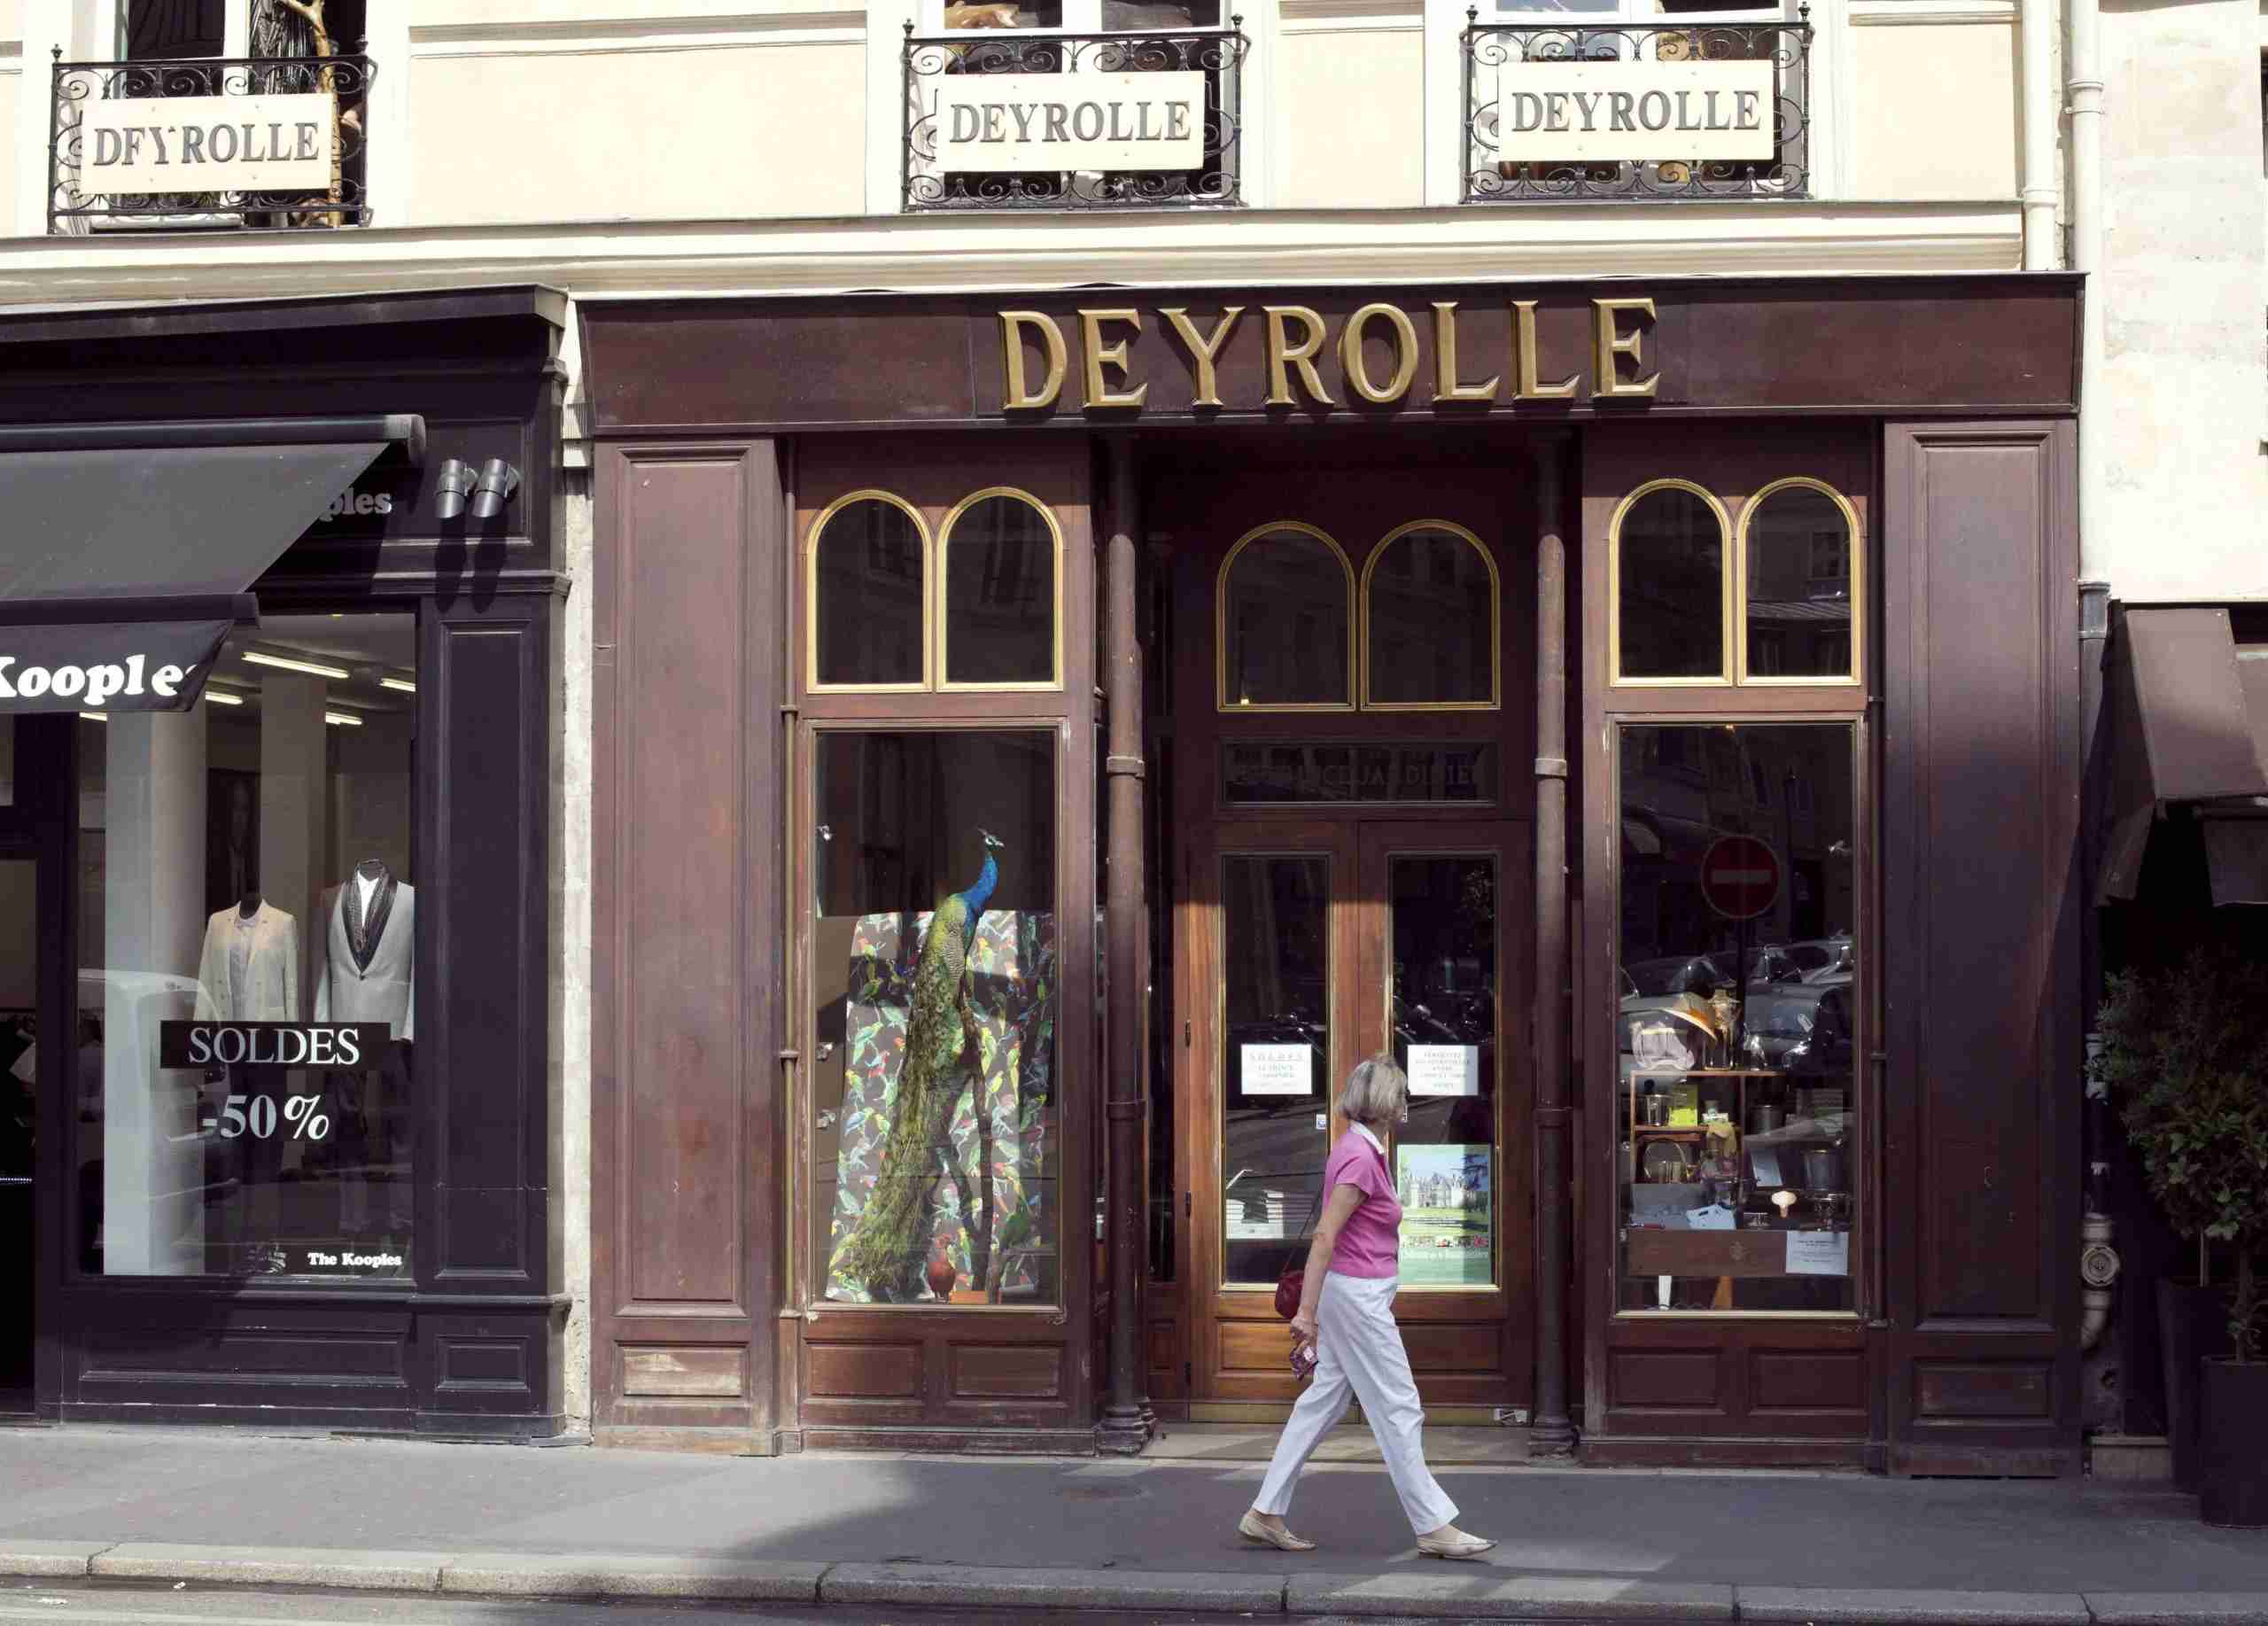 A person walks in front of the Deyrolle shop in Paris on July 16, 2013, after repair work following a fire. Located rue du Bac since 1888, the shop attracts amateurs and collectioneurs, who come to discover naturalised animals, collections of insects, butterflies, entomological material, minerals and fossils, a well as the famous old and republished plates. Founded in 1831 by Jean-Baptiste Deyrolle, fond of natural history, the house rapidly has taken a pedagogical vocation. . AFP PHOTO / PATRICK KOVARIK (Photo credit should read PATRICK KOVARIK/AFP via Getty Images)